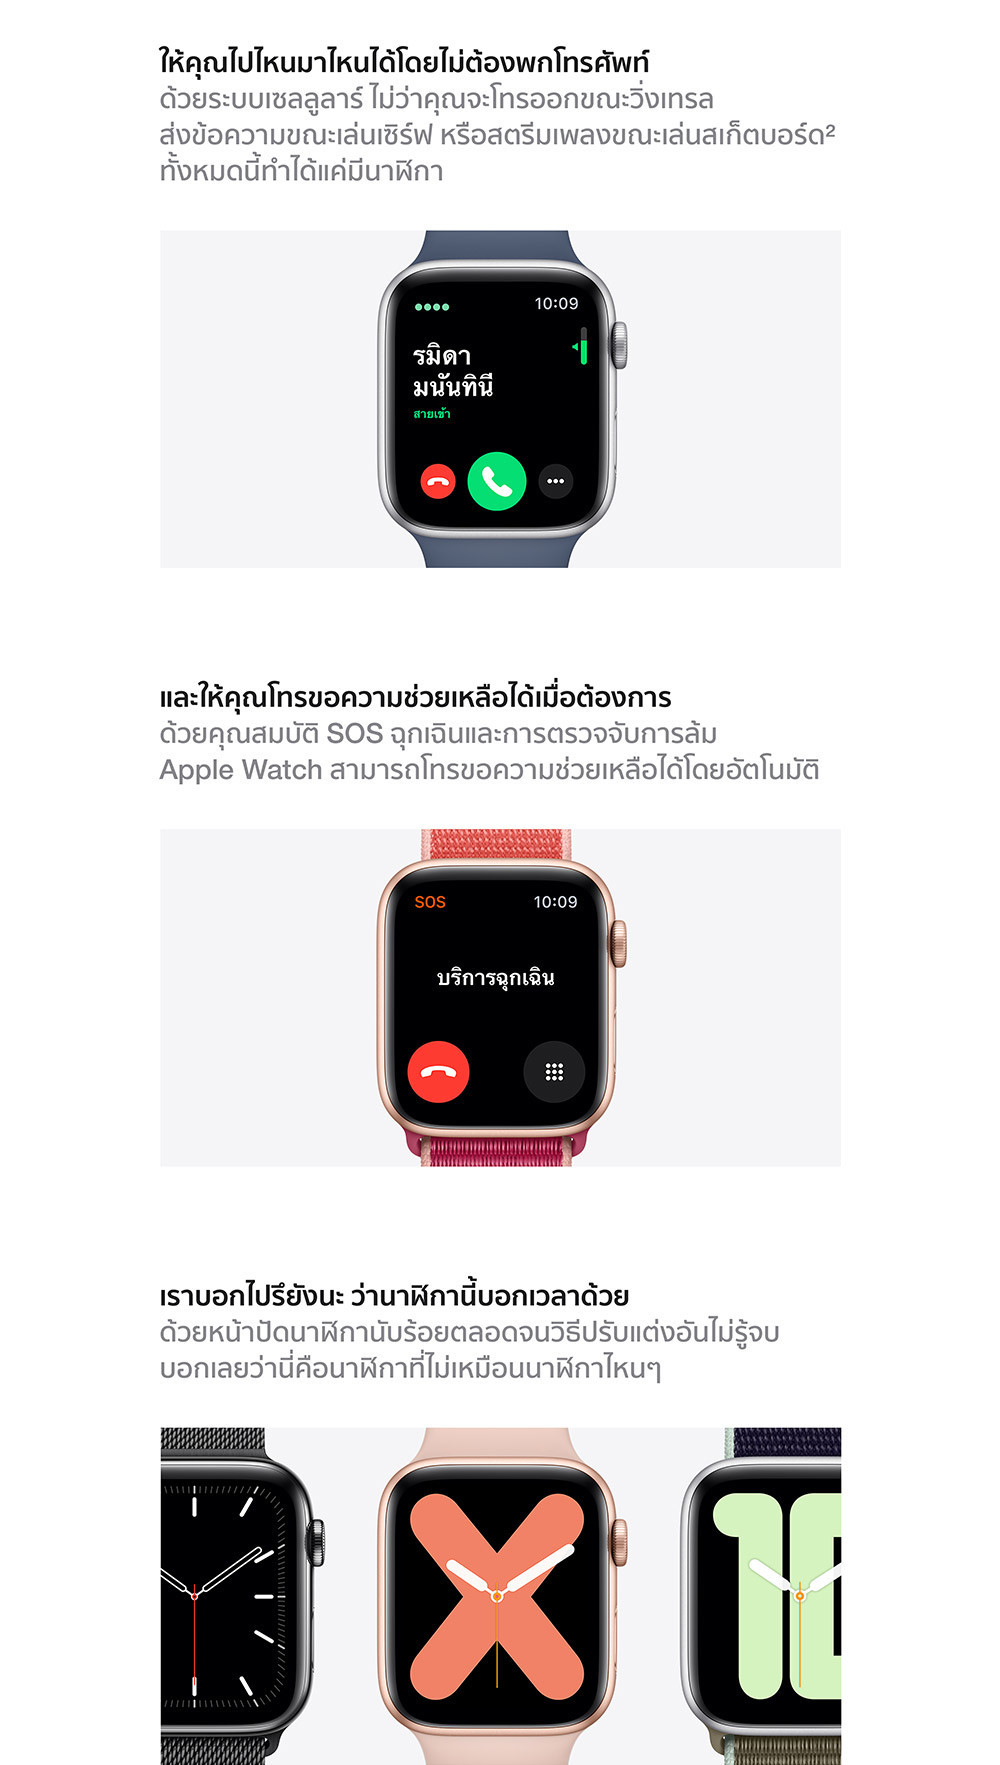 c5applewatchseries55.jpg